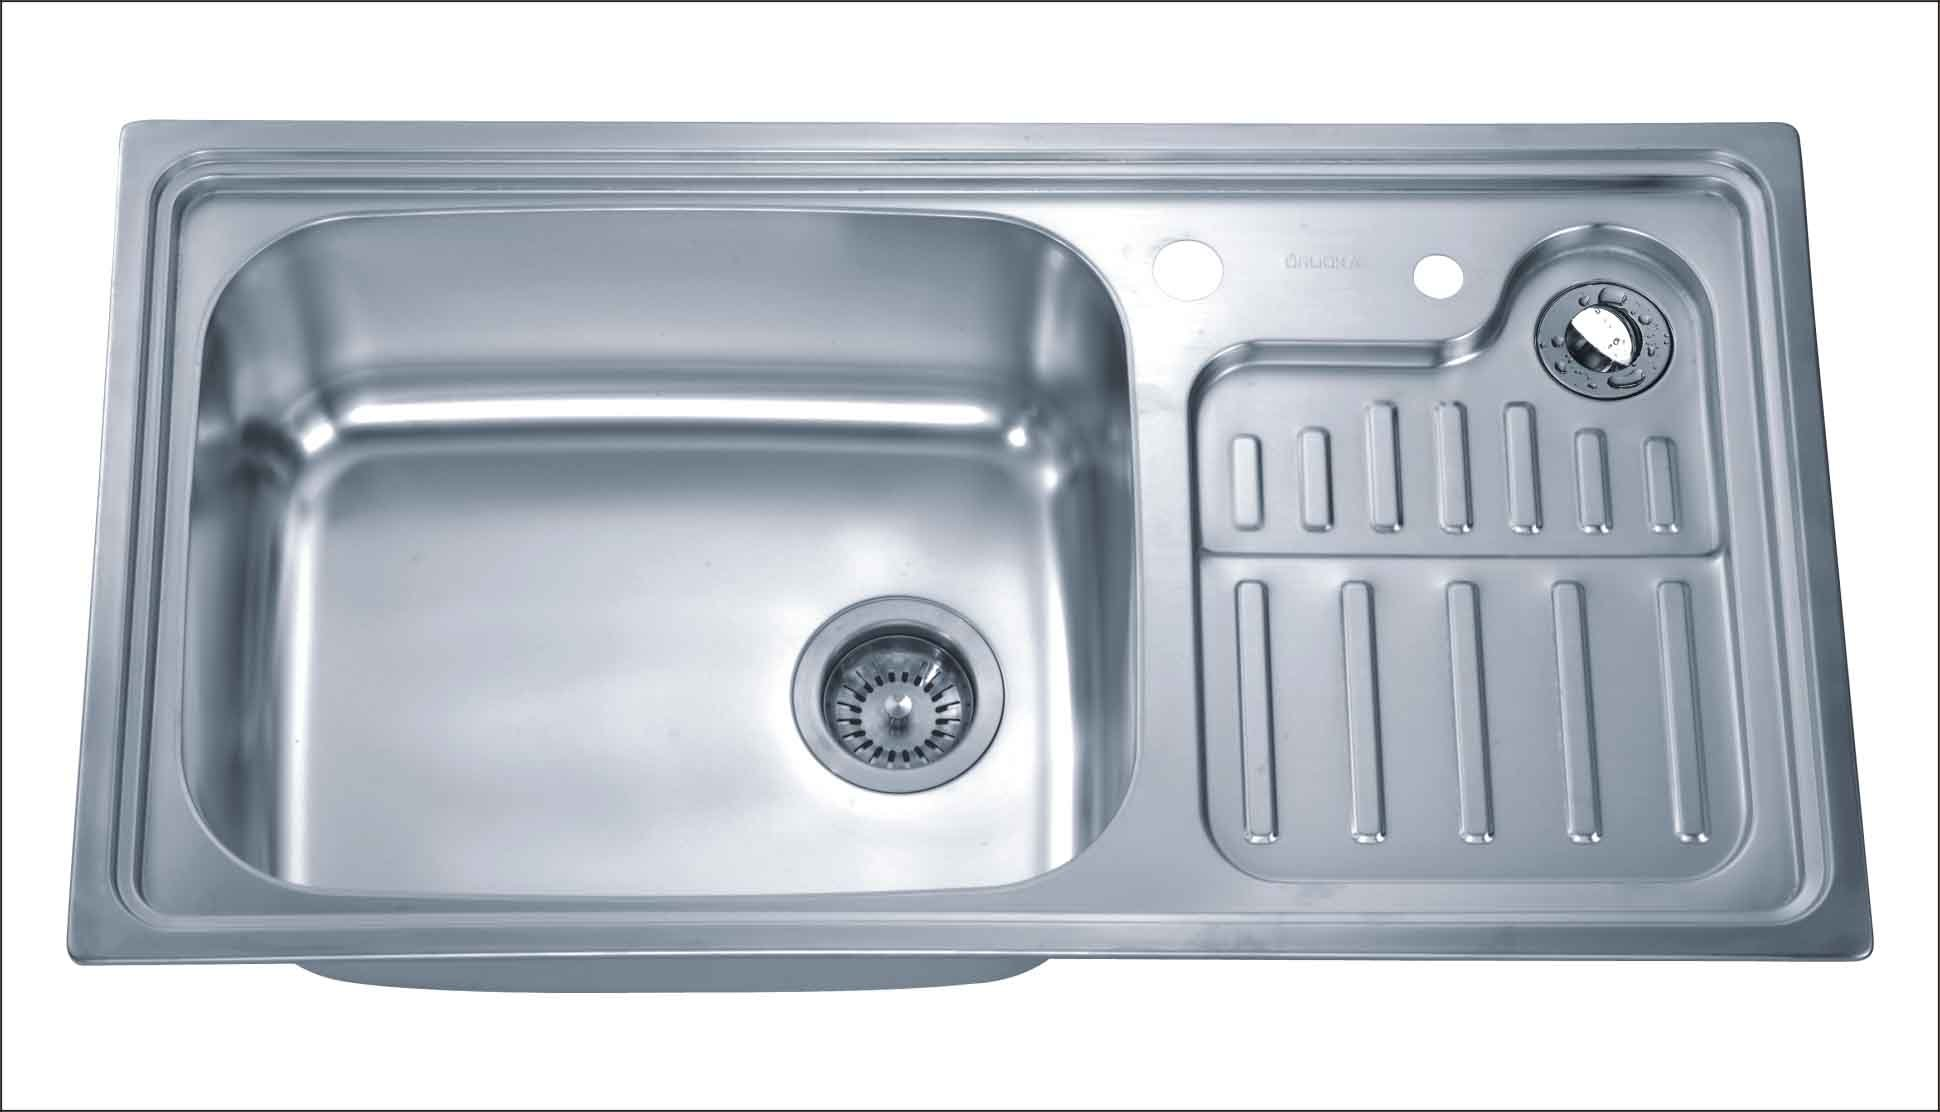 Stainless Steel Kitchen Sinks : ... Steel Kitchen Sink 2876 - China Kitchen Sink, Stainless Steel Sink